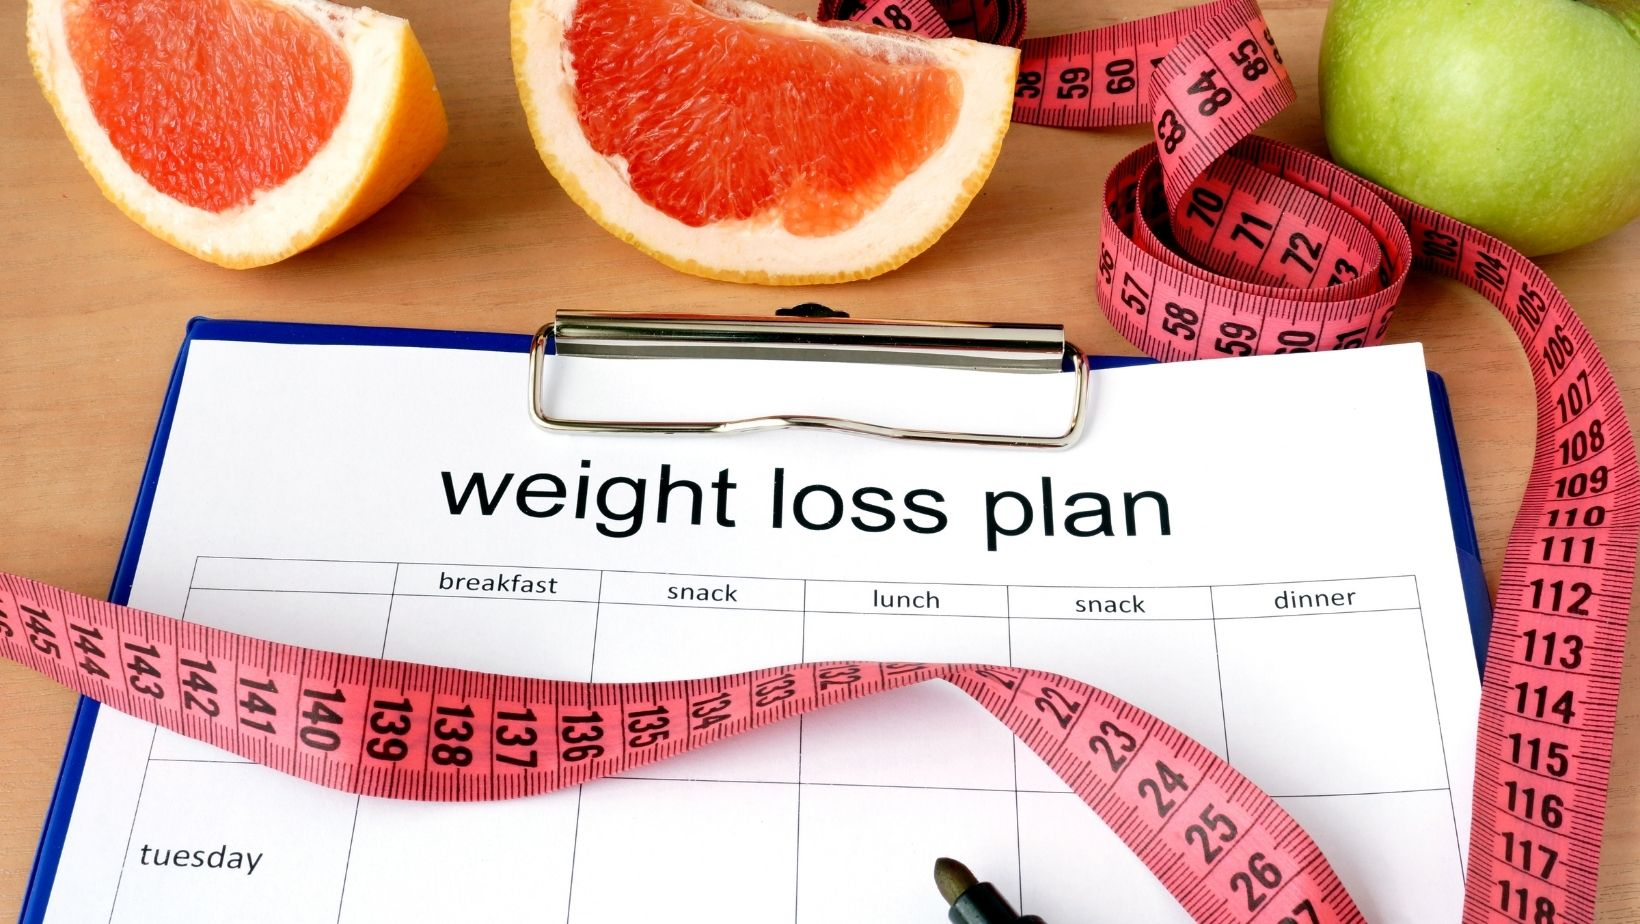 TruVision Health Weight Loss Reviews